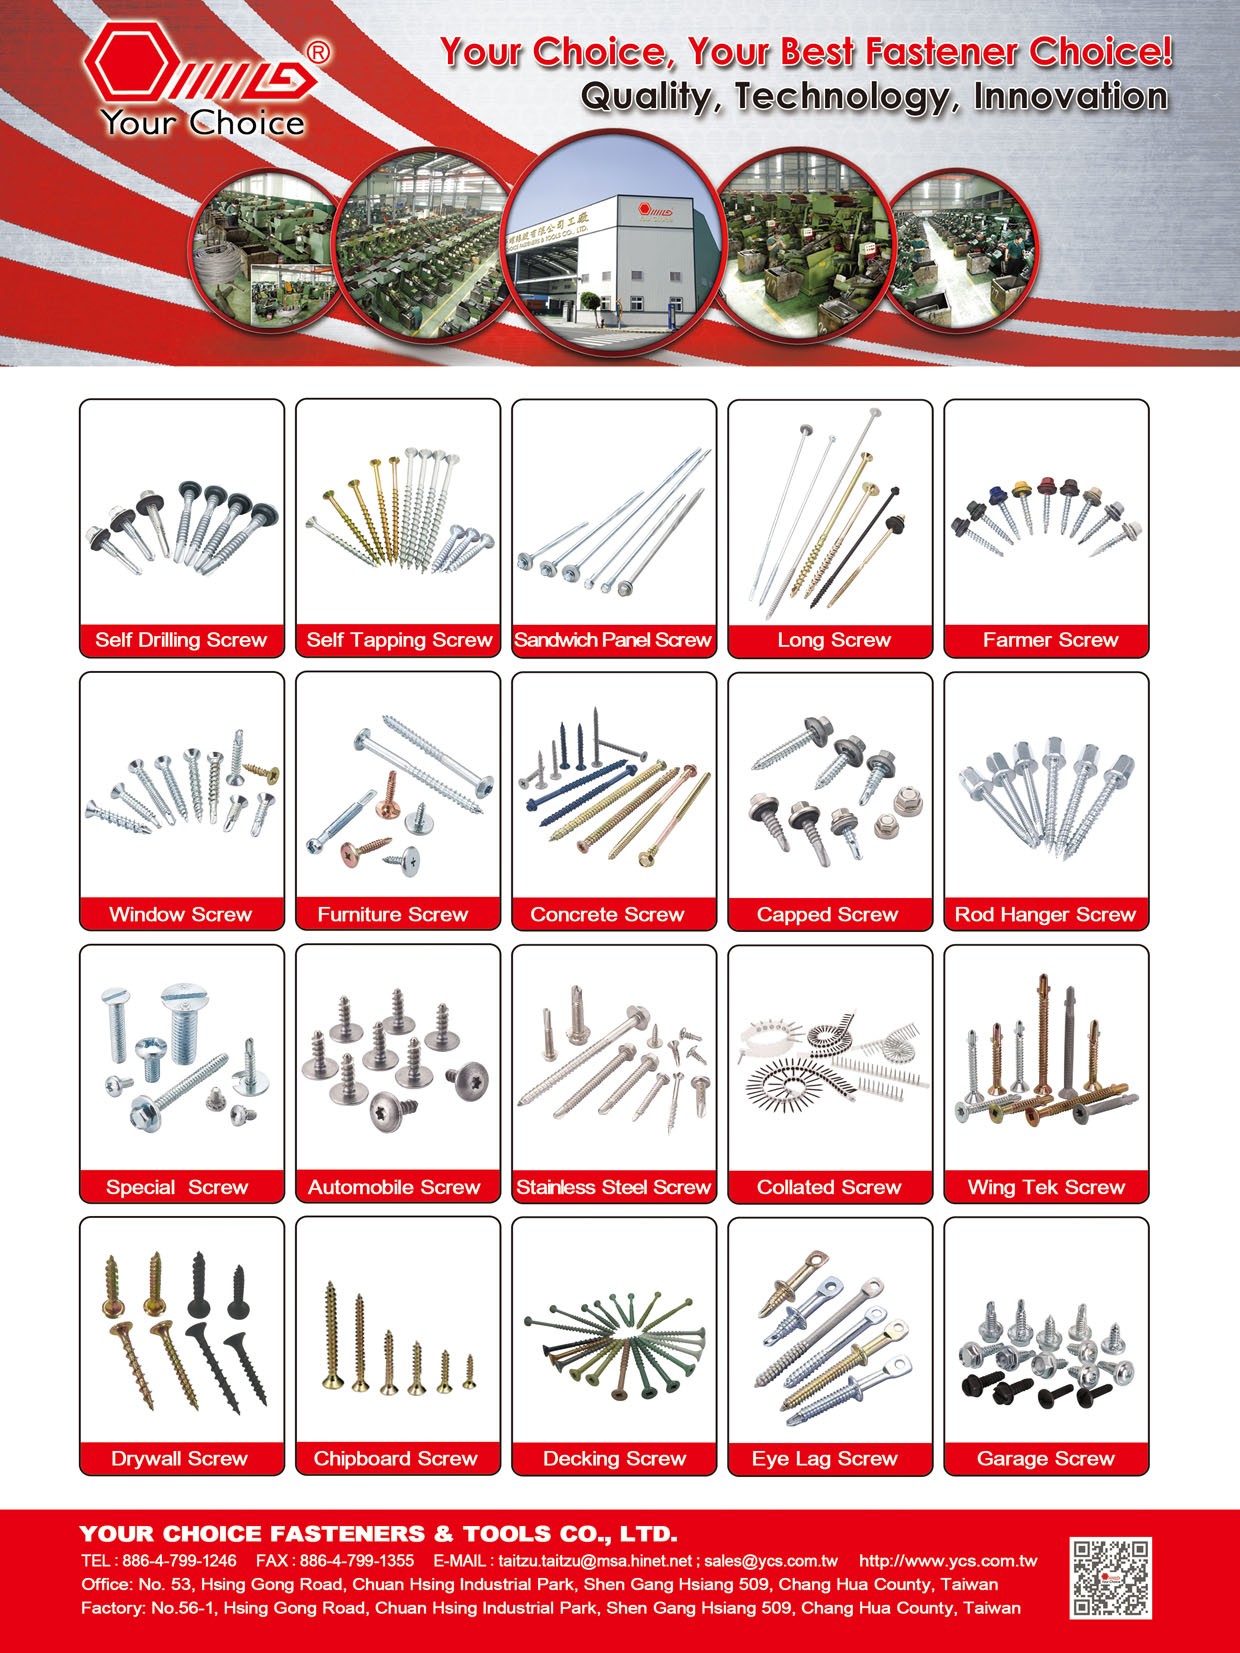 YOUR CHOICE FASTENERS & TOOLS CO., LTD.  Online Catalogues